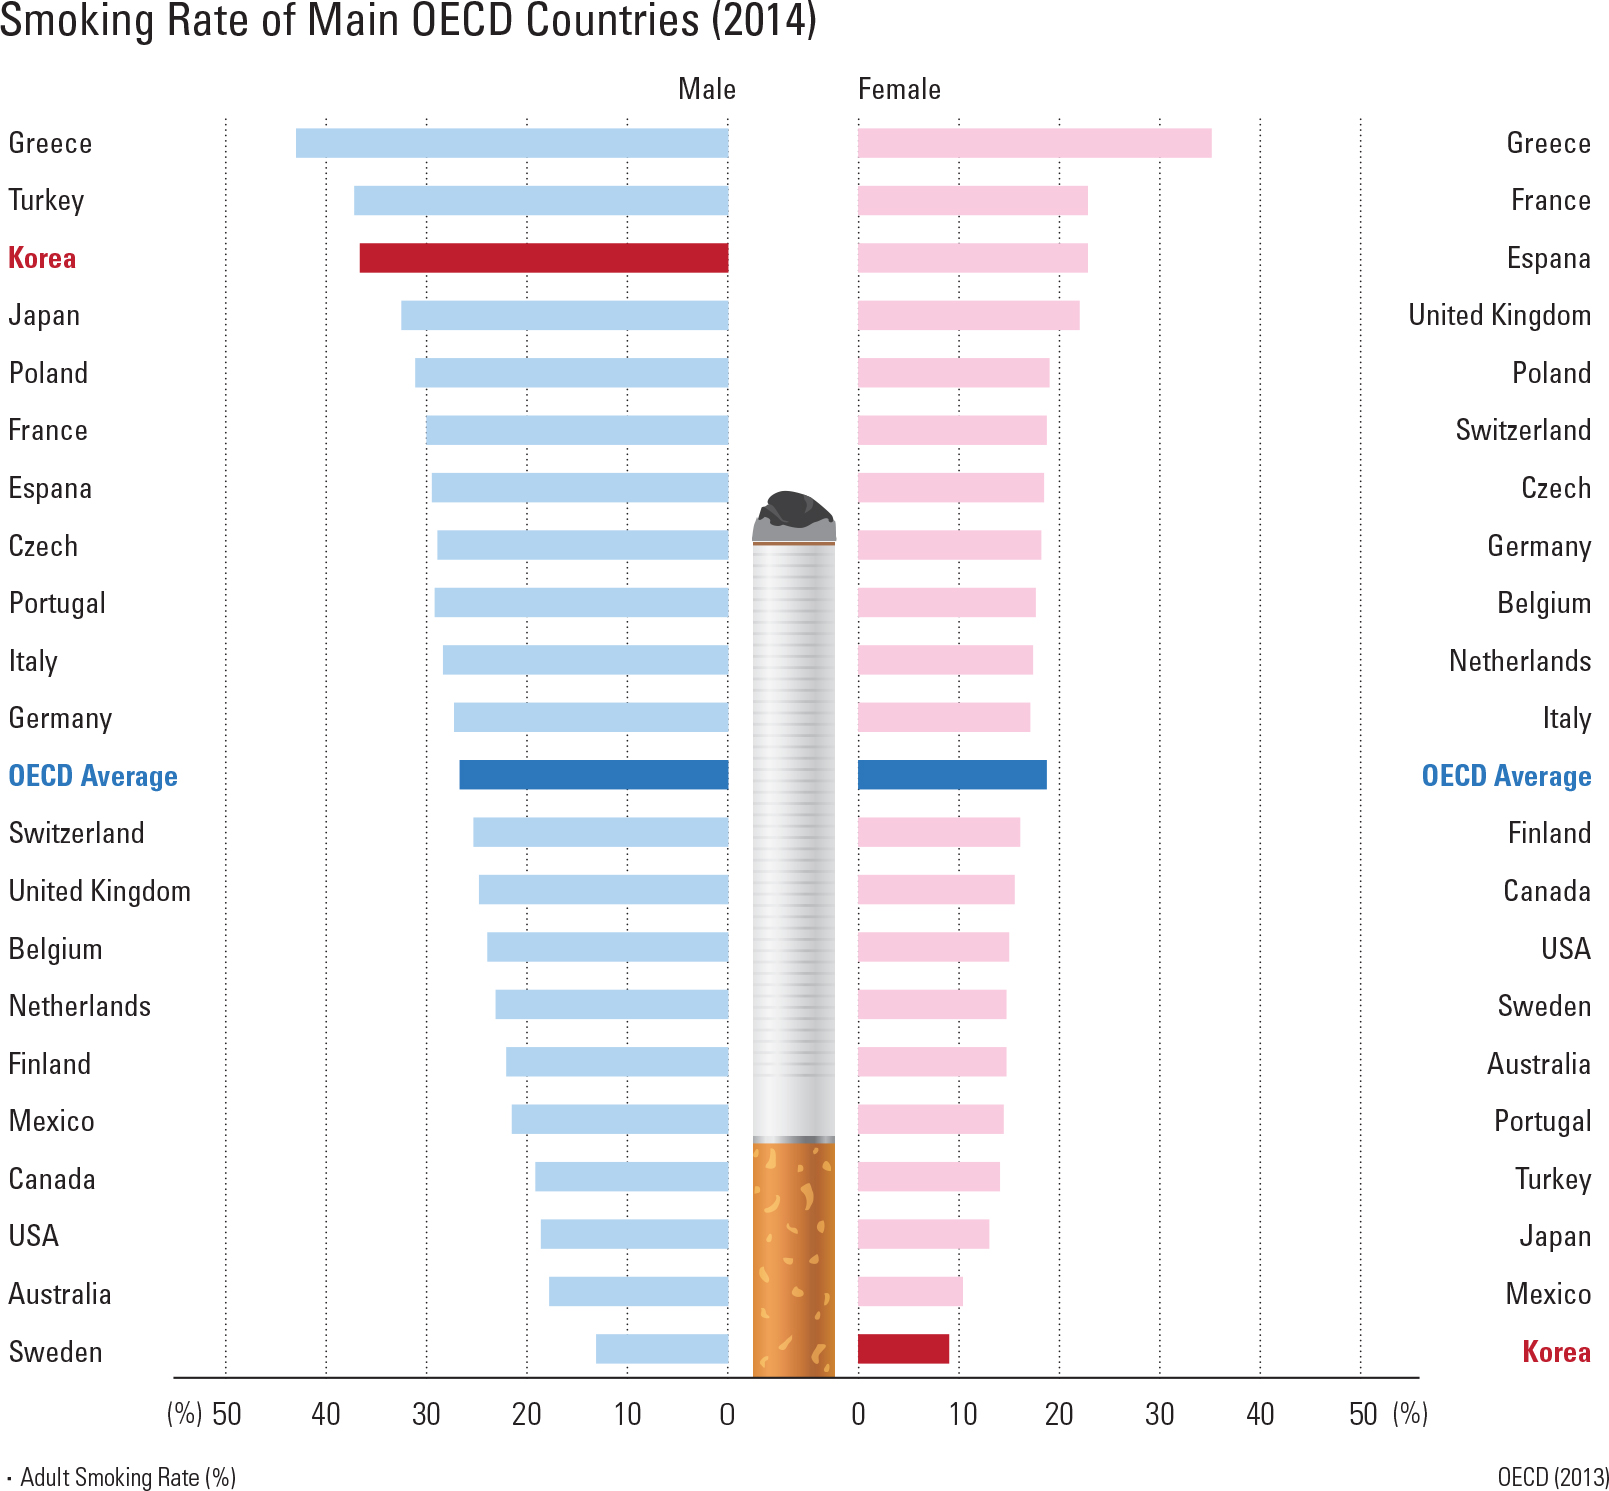 """Smoking Rate of Main OECD Countries (2014)<p class=""""oz_zoom"""" zimg=""""http://imagedata.cafe24.com/us_3/us3_234-1_2.jpg""""><span style=""""font-family:Nanum Myeongjo;""""><span style=""""font-size:18px;""""><span class=""""label label-danger"""">UPDATE DATA</span></span></p>"""